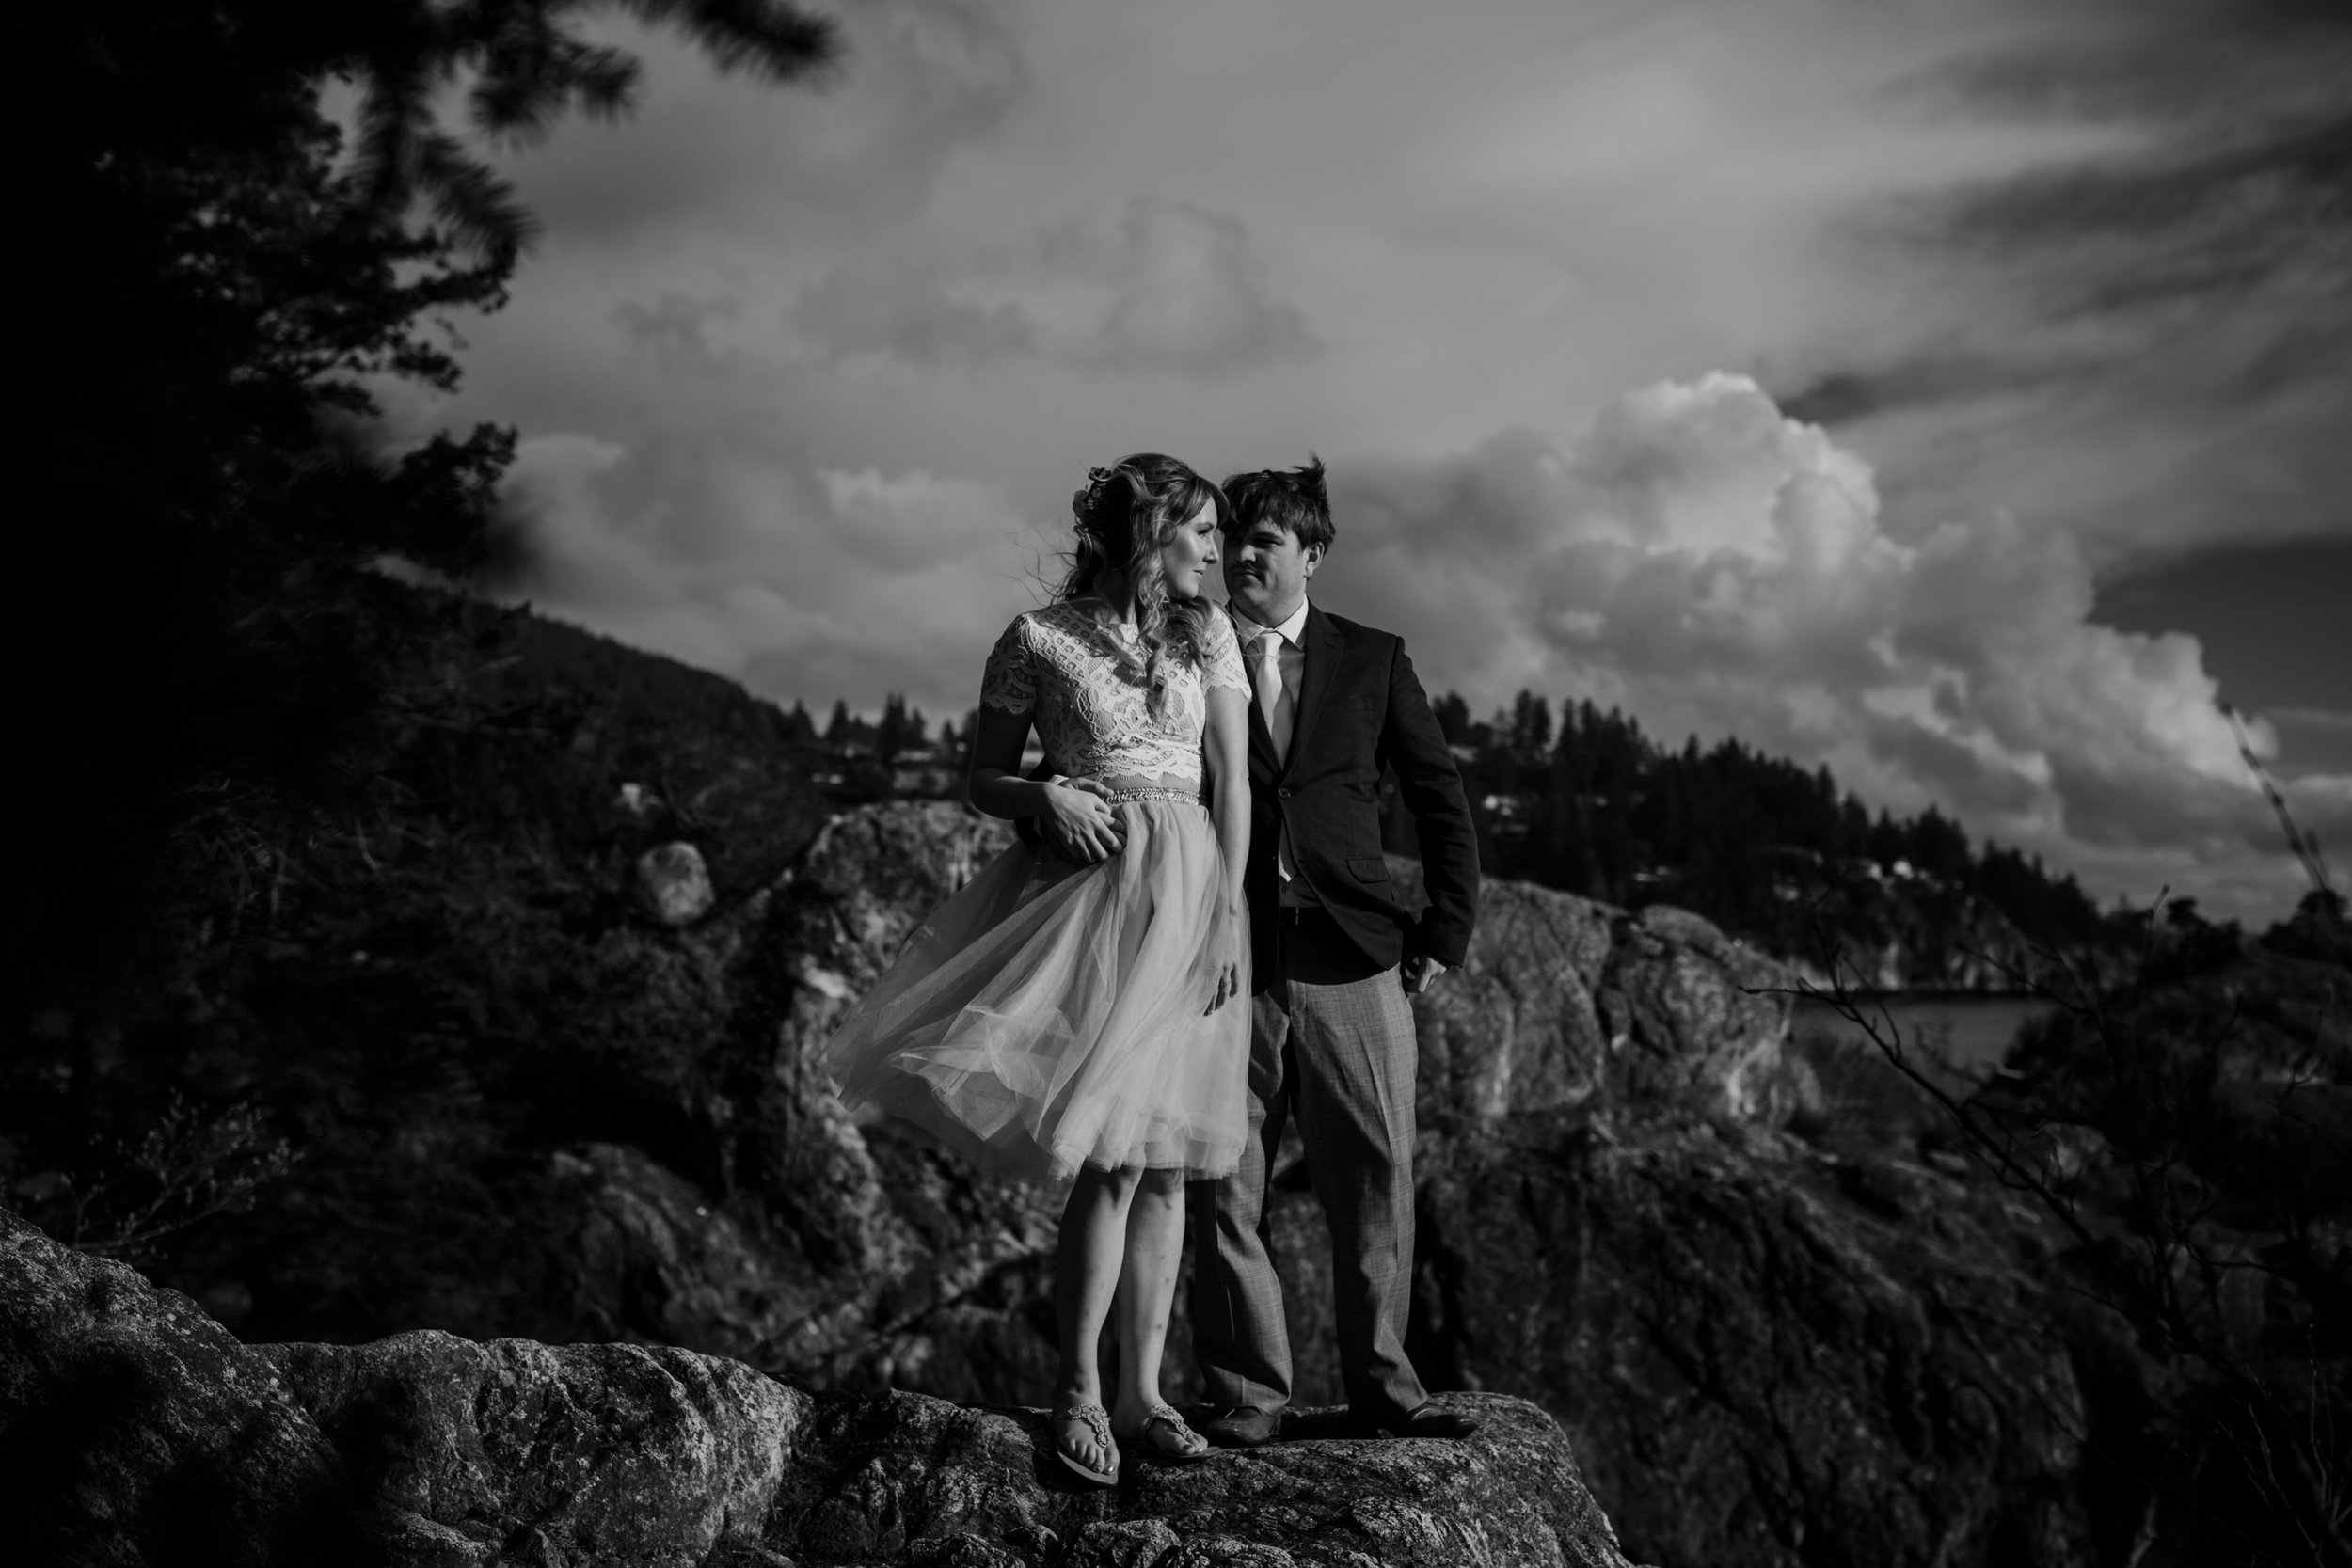 Whytecliff Park Engagement Photos - Vancouver Wedding Photographer - Jennifer Picard Photography036.JPG